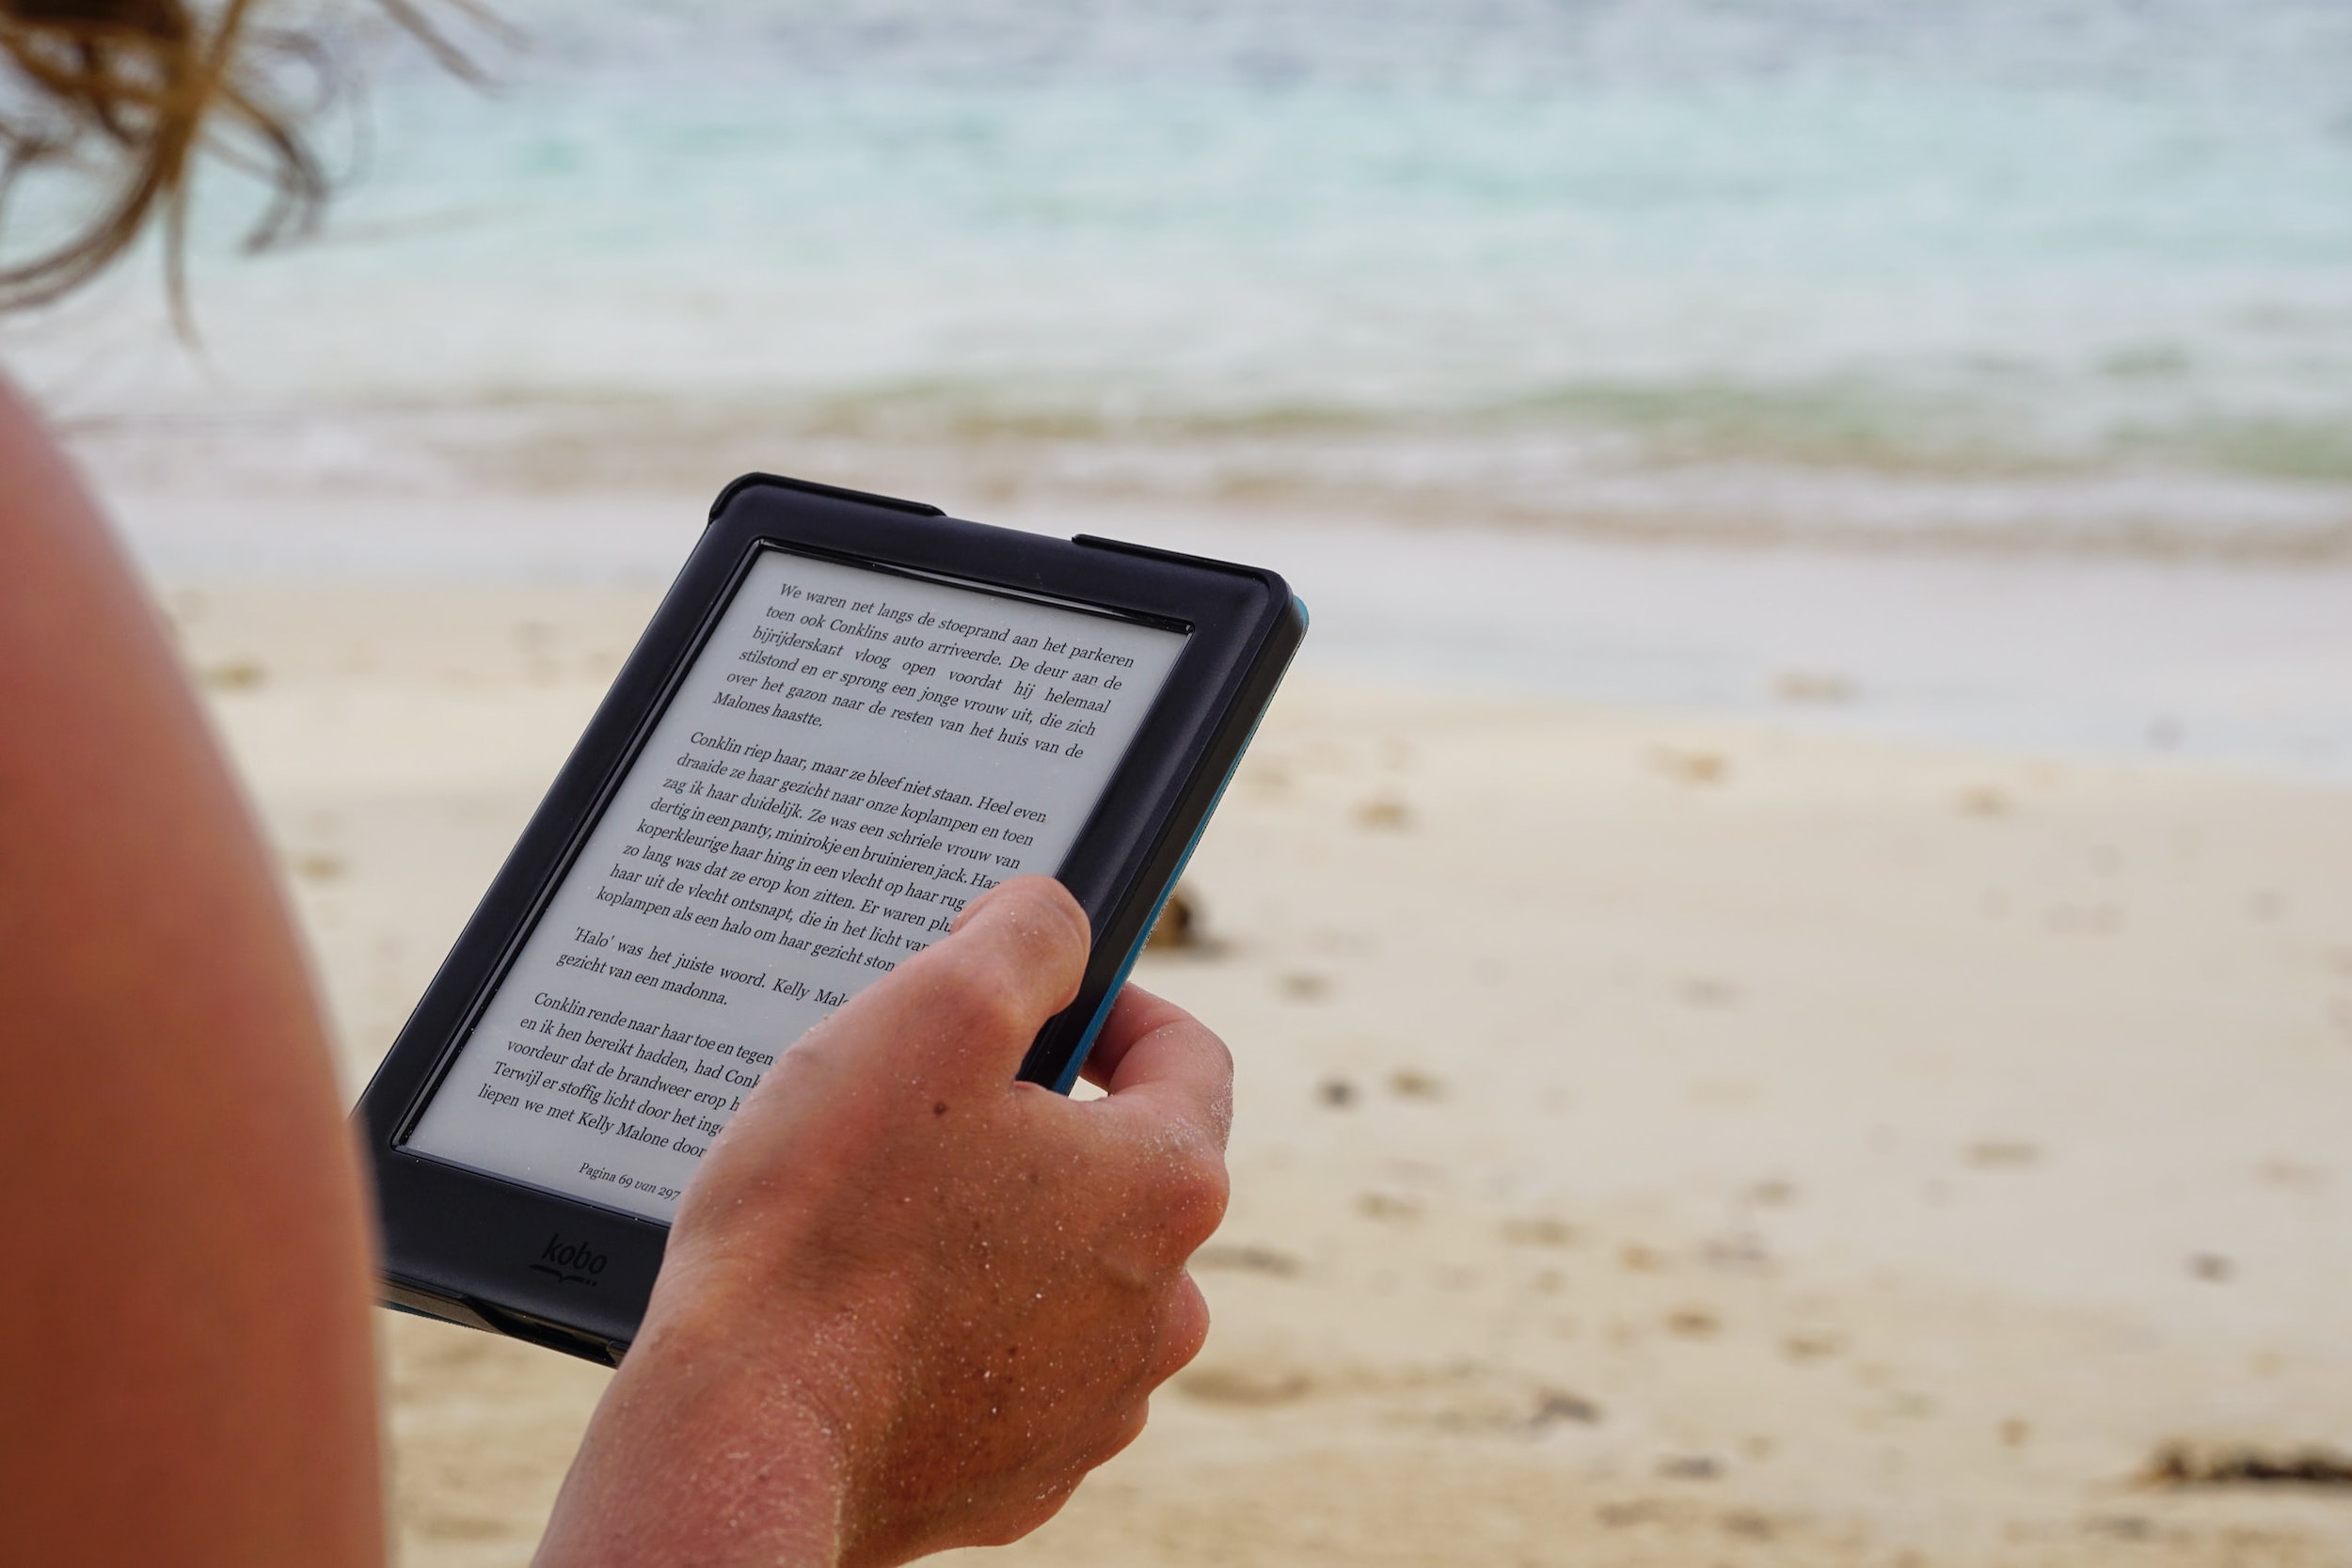 Where to Start with eBook Accessibility